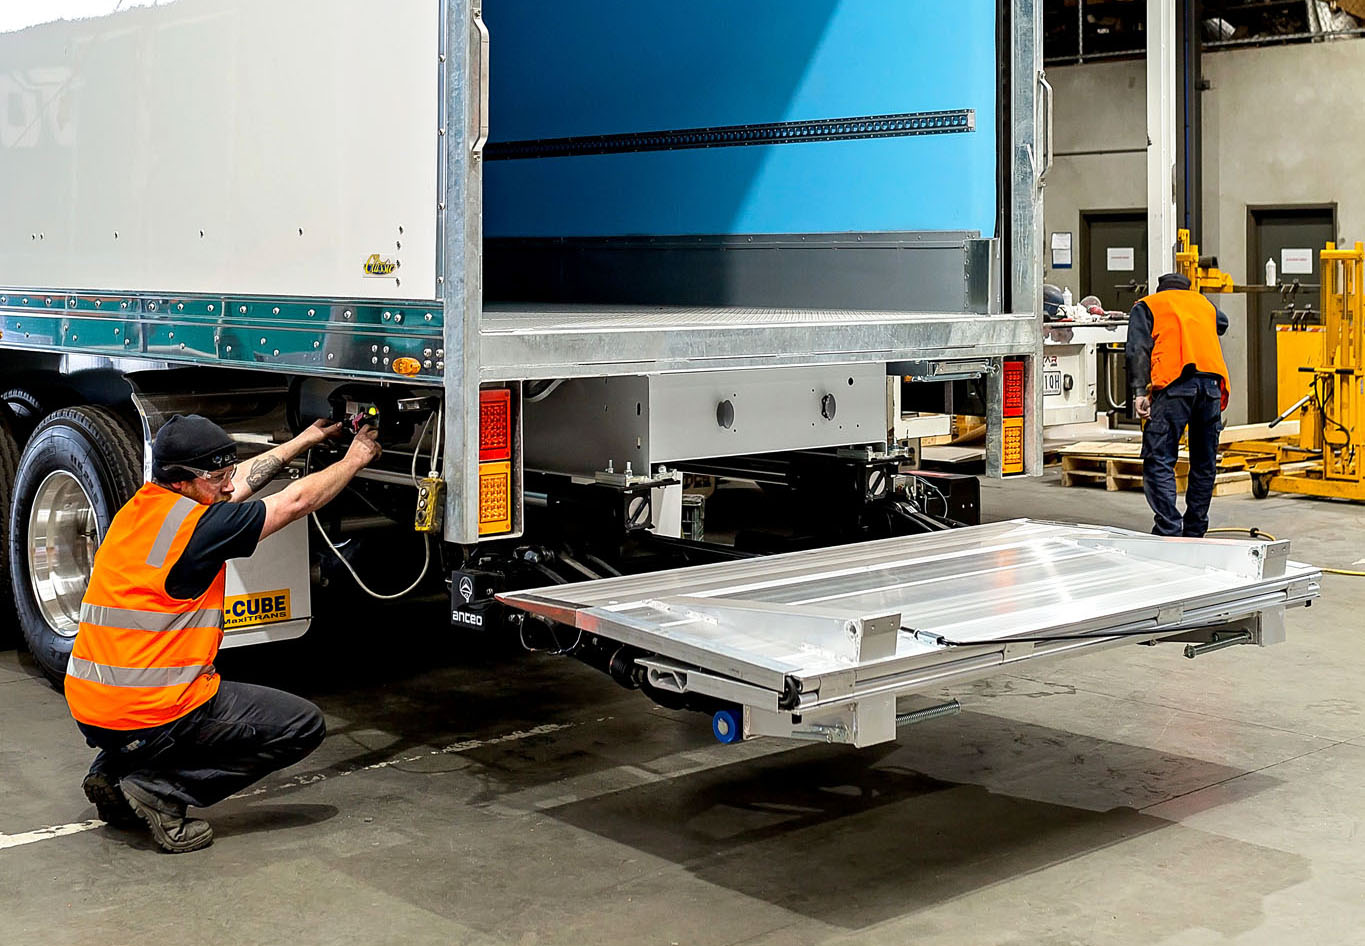 Anteo tail lift installation